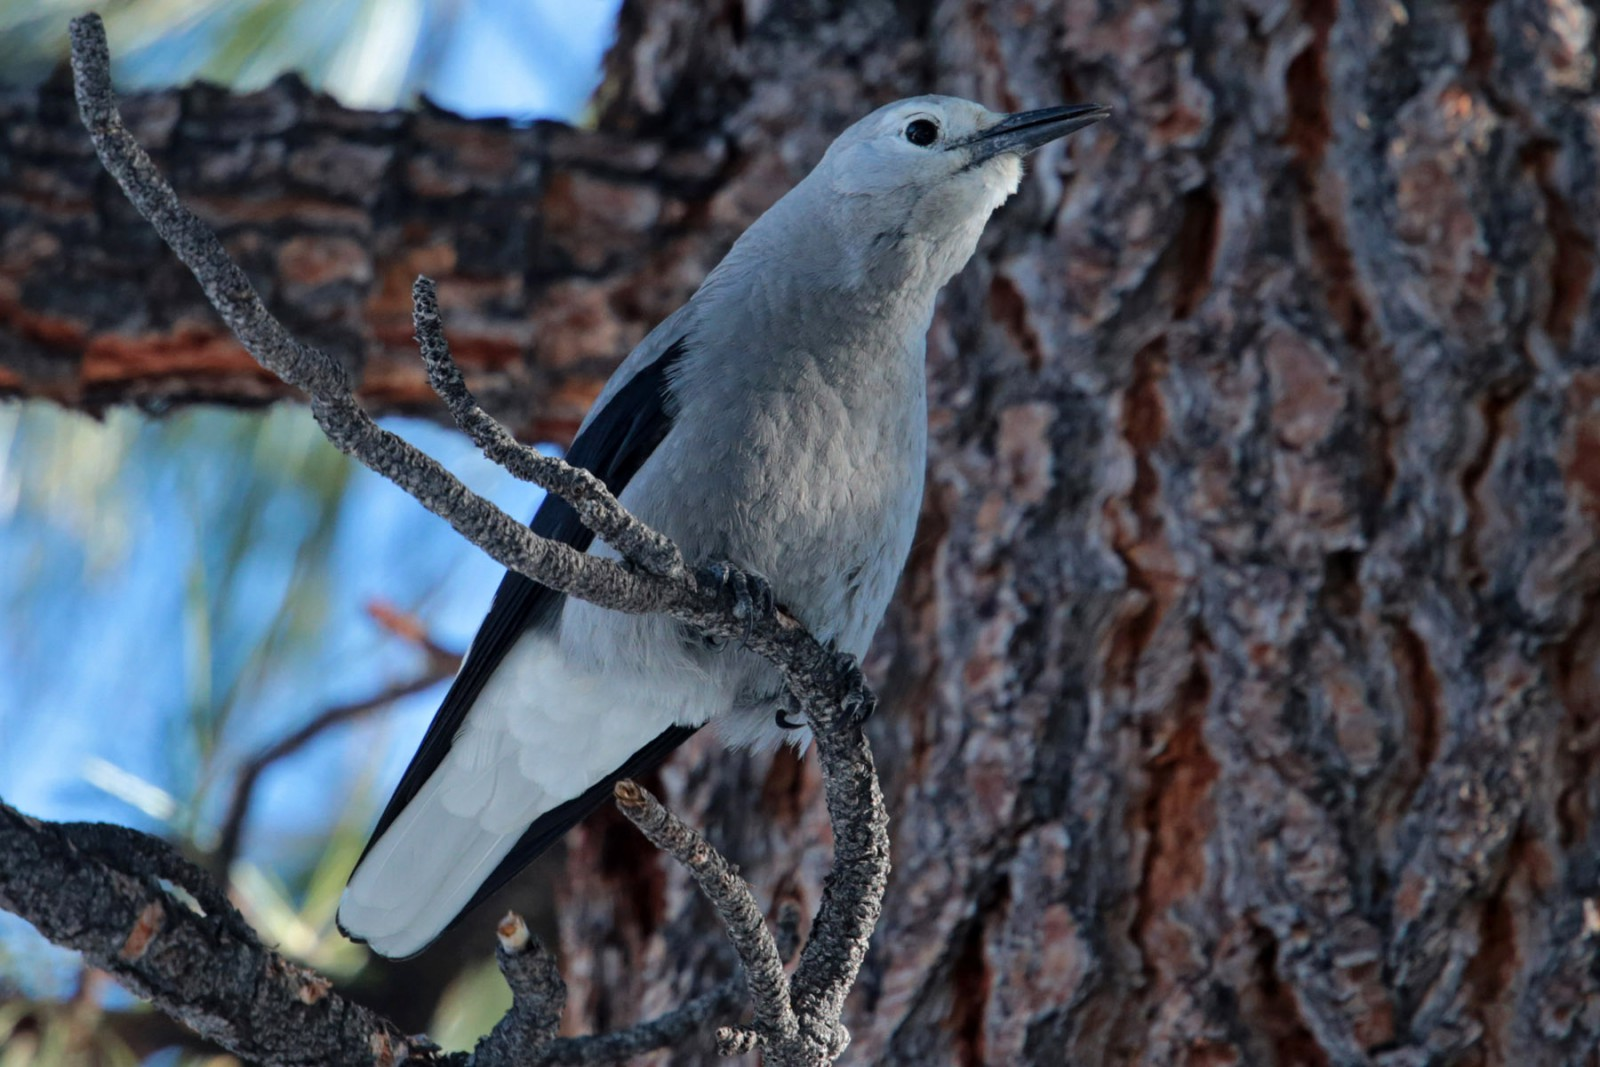 Photo of a Clark's Nutcracker, a bird who helps forests by  gathering and caching pine cone seeds.  Uneaten seeds may then sprout into new trees.